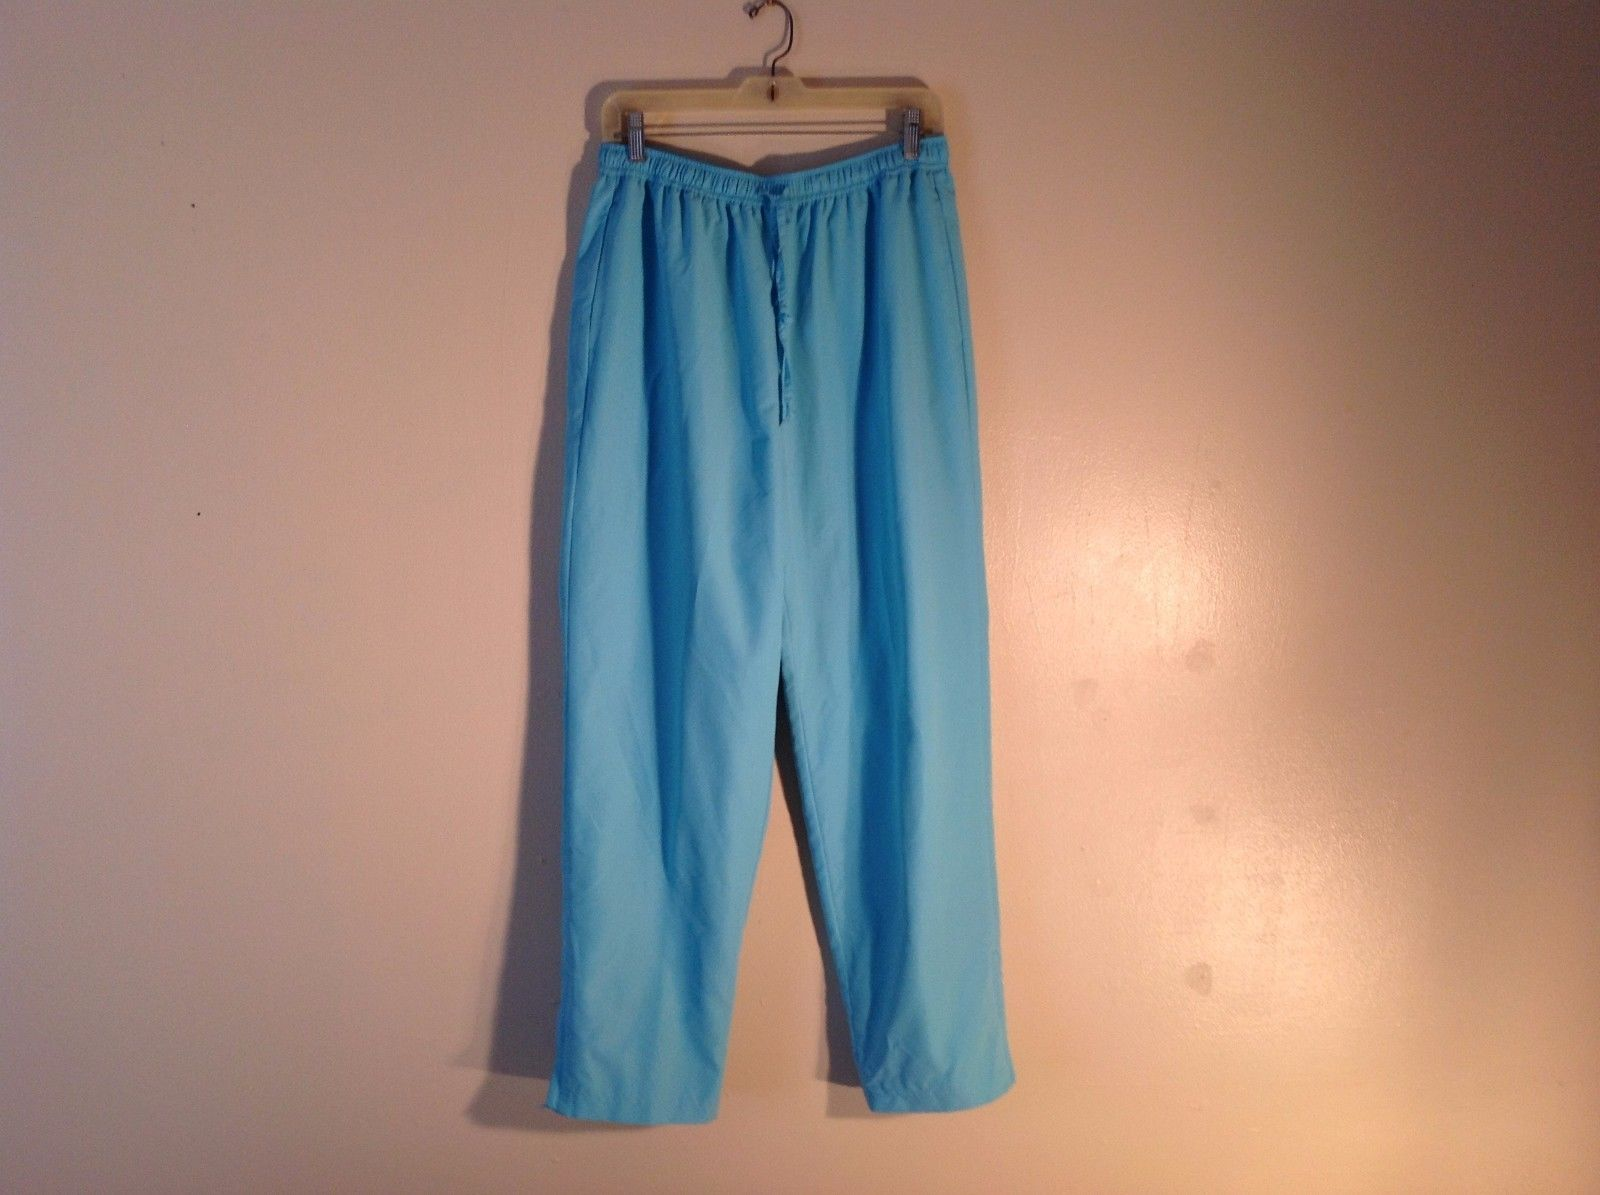 Great Used Condition Appleseed's M Sky Blue Stretchy Comfortable Pants